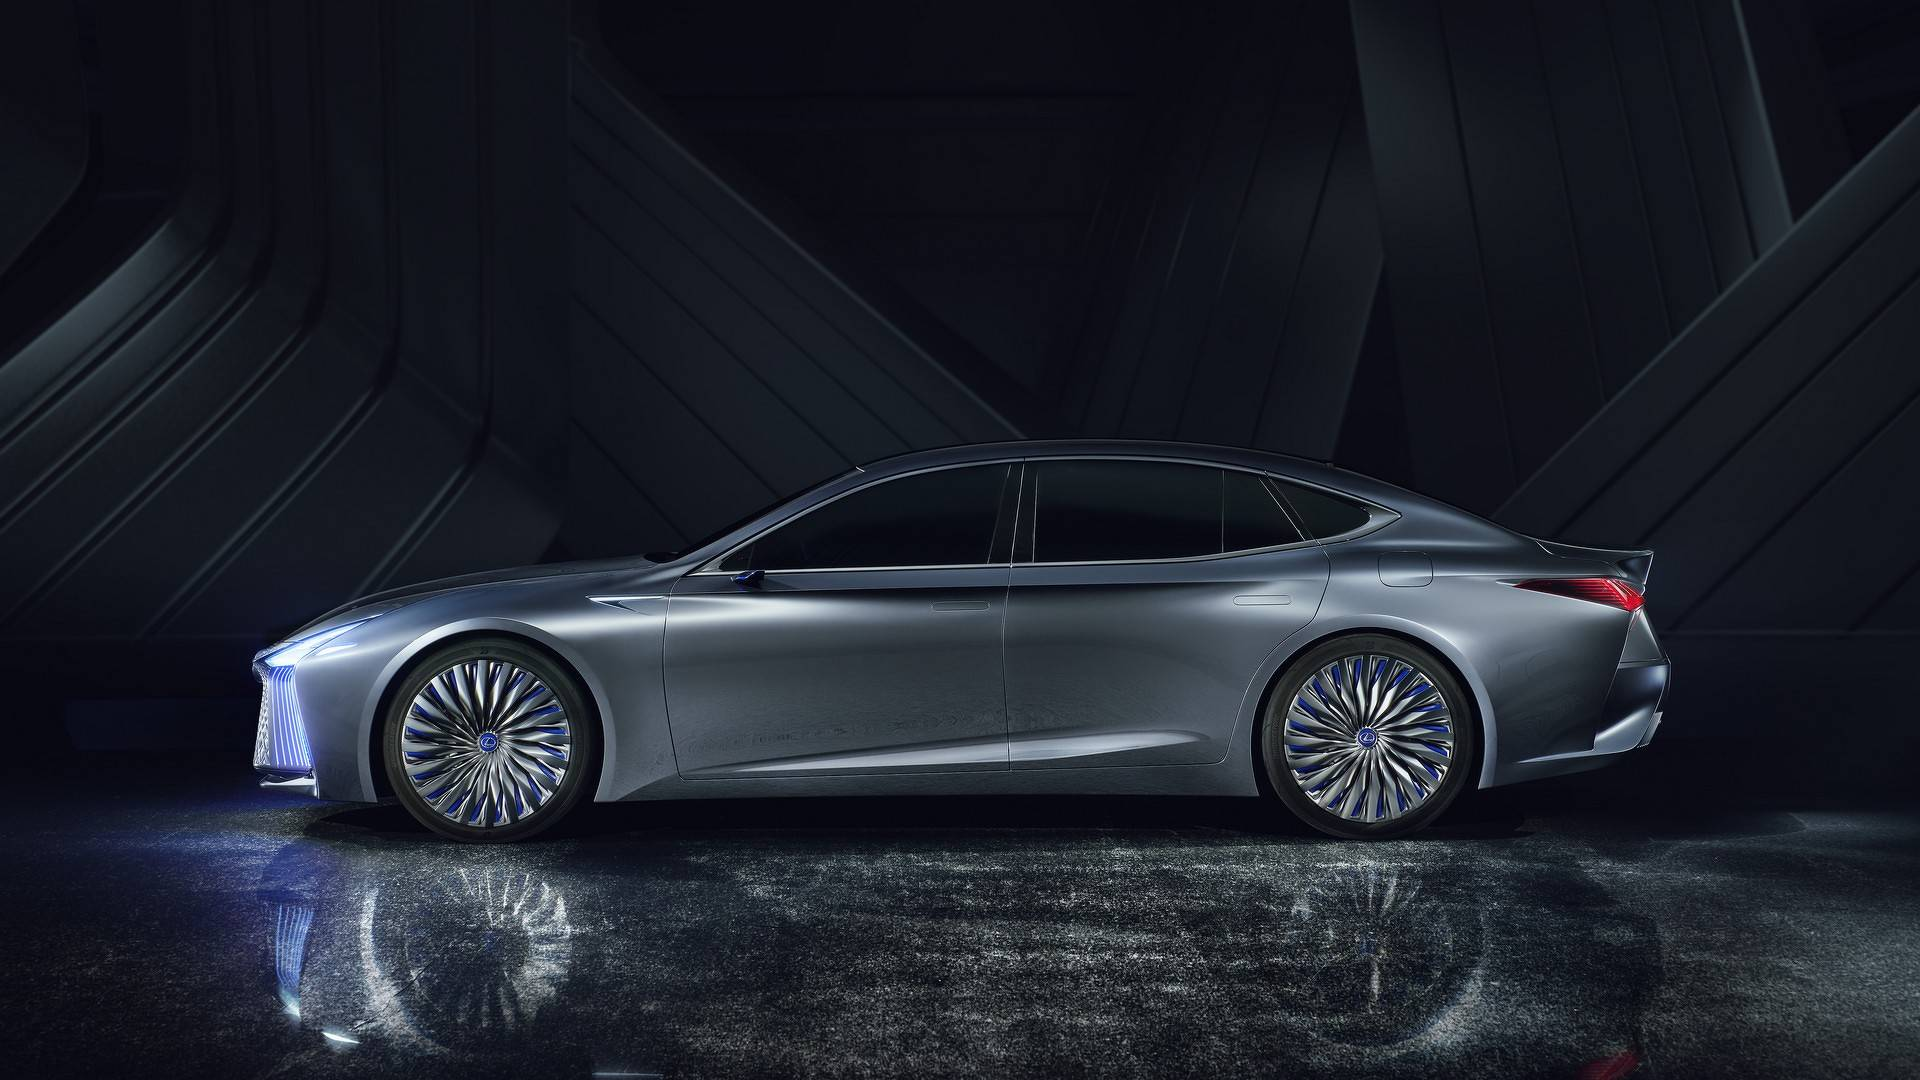 lexus-ls-concept-isnt-the-twin-turbo-v8-powered-ls-f-we-were-expecting_1 Amazing toyota Camry 2008 Cabin Air Filter Cars Trend